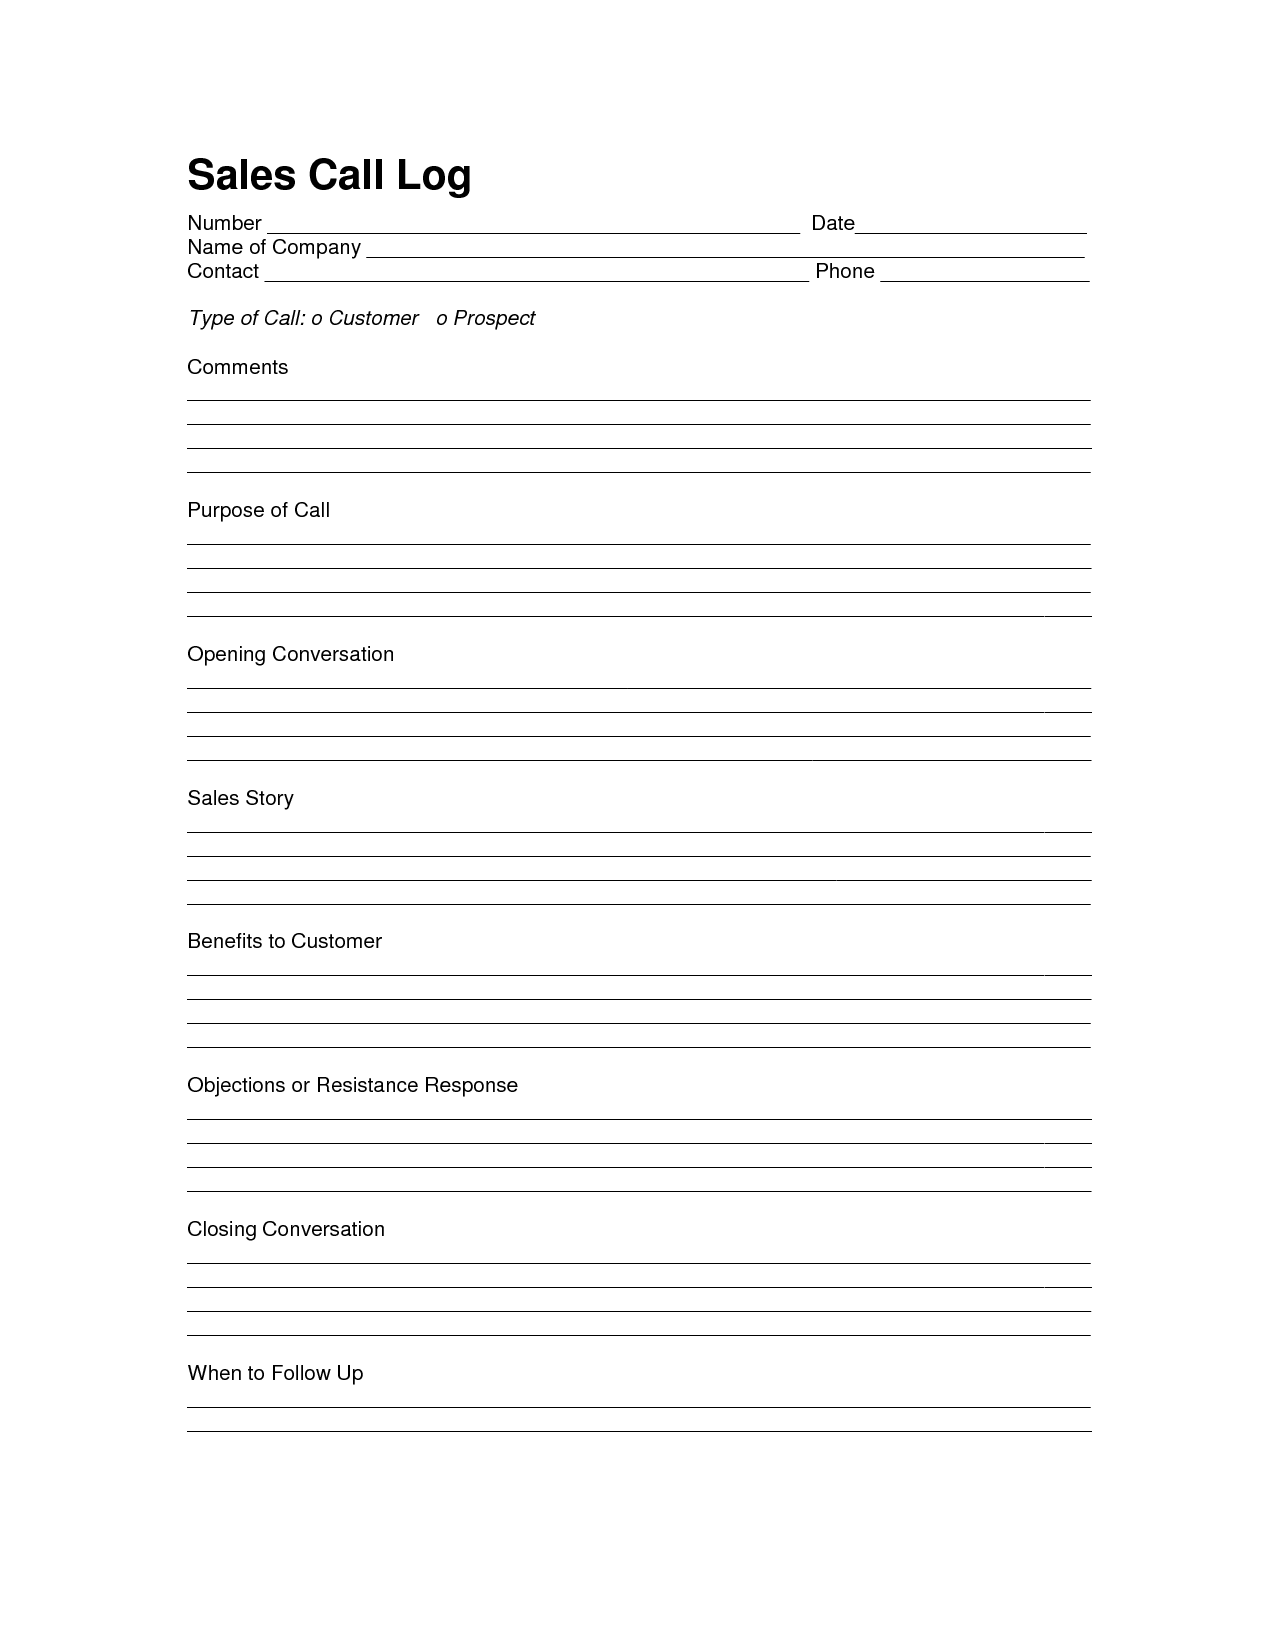 sales log sheet template | Sales Call Log Template | call log ...